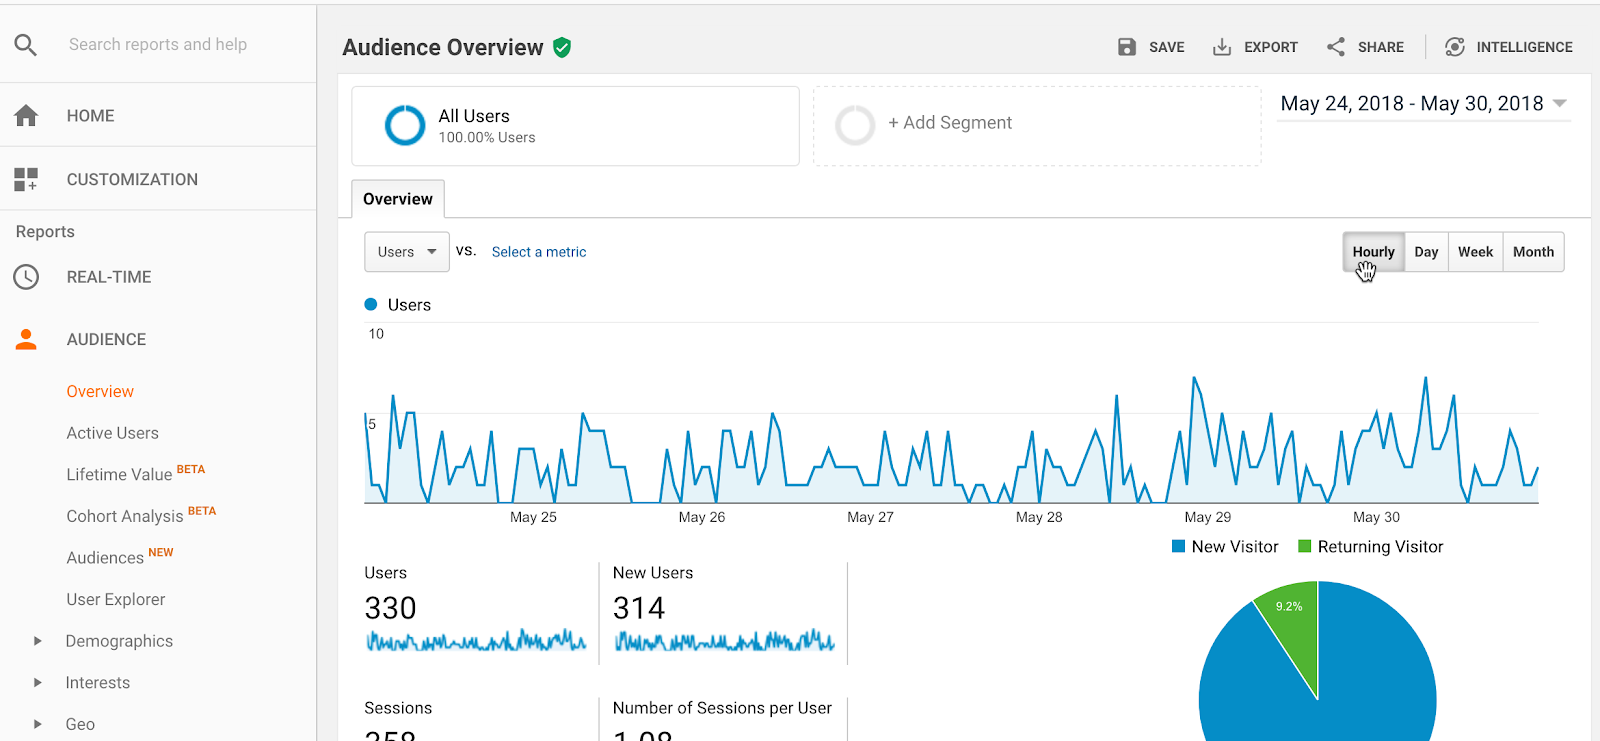 google analytics audience overview shows what times of day are most popular for your website